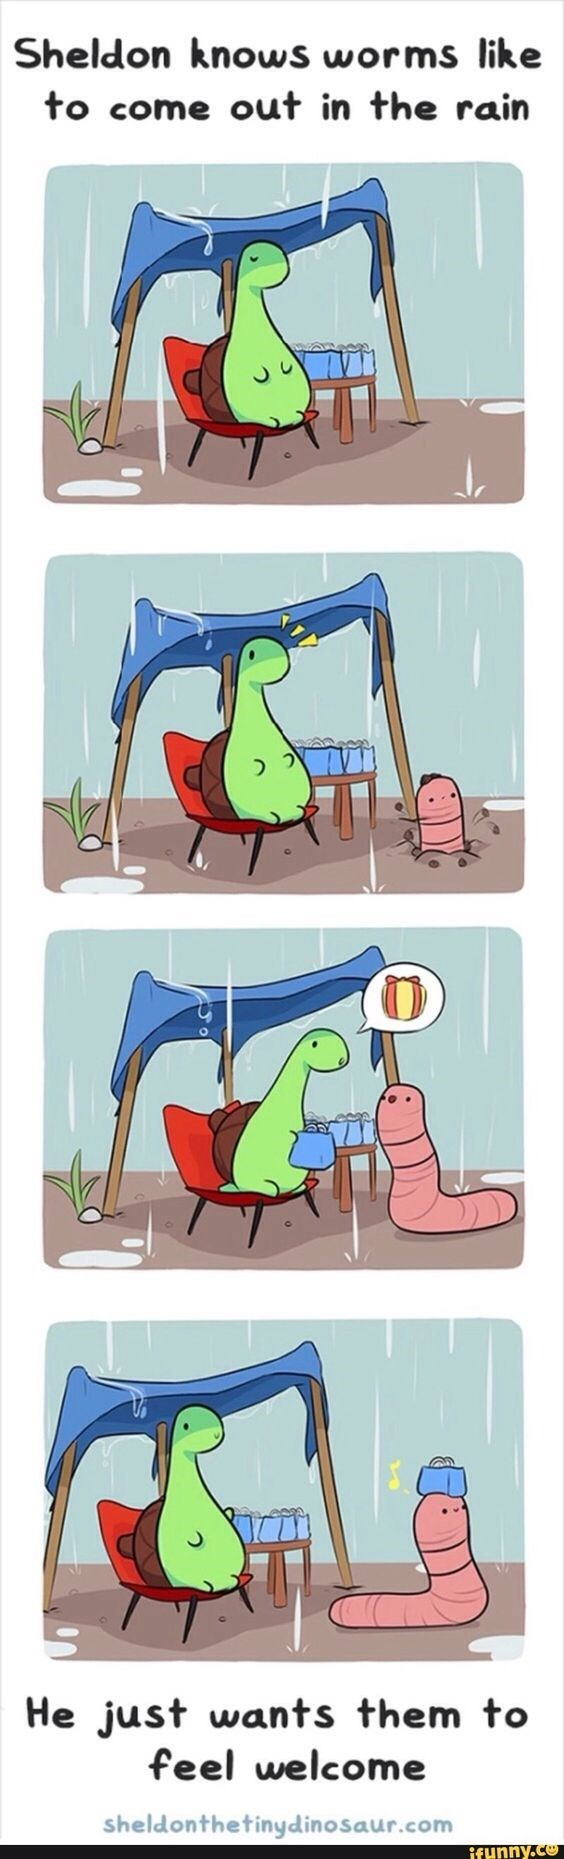 Clip art - Sheldon knows worms like to come out in the rain He just wants them to feel welcome sheldonthetinydinosaur.com ifunny.co